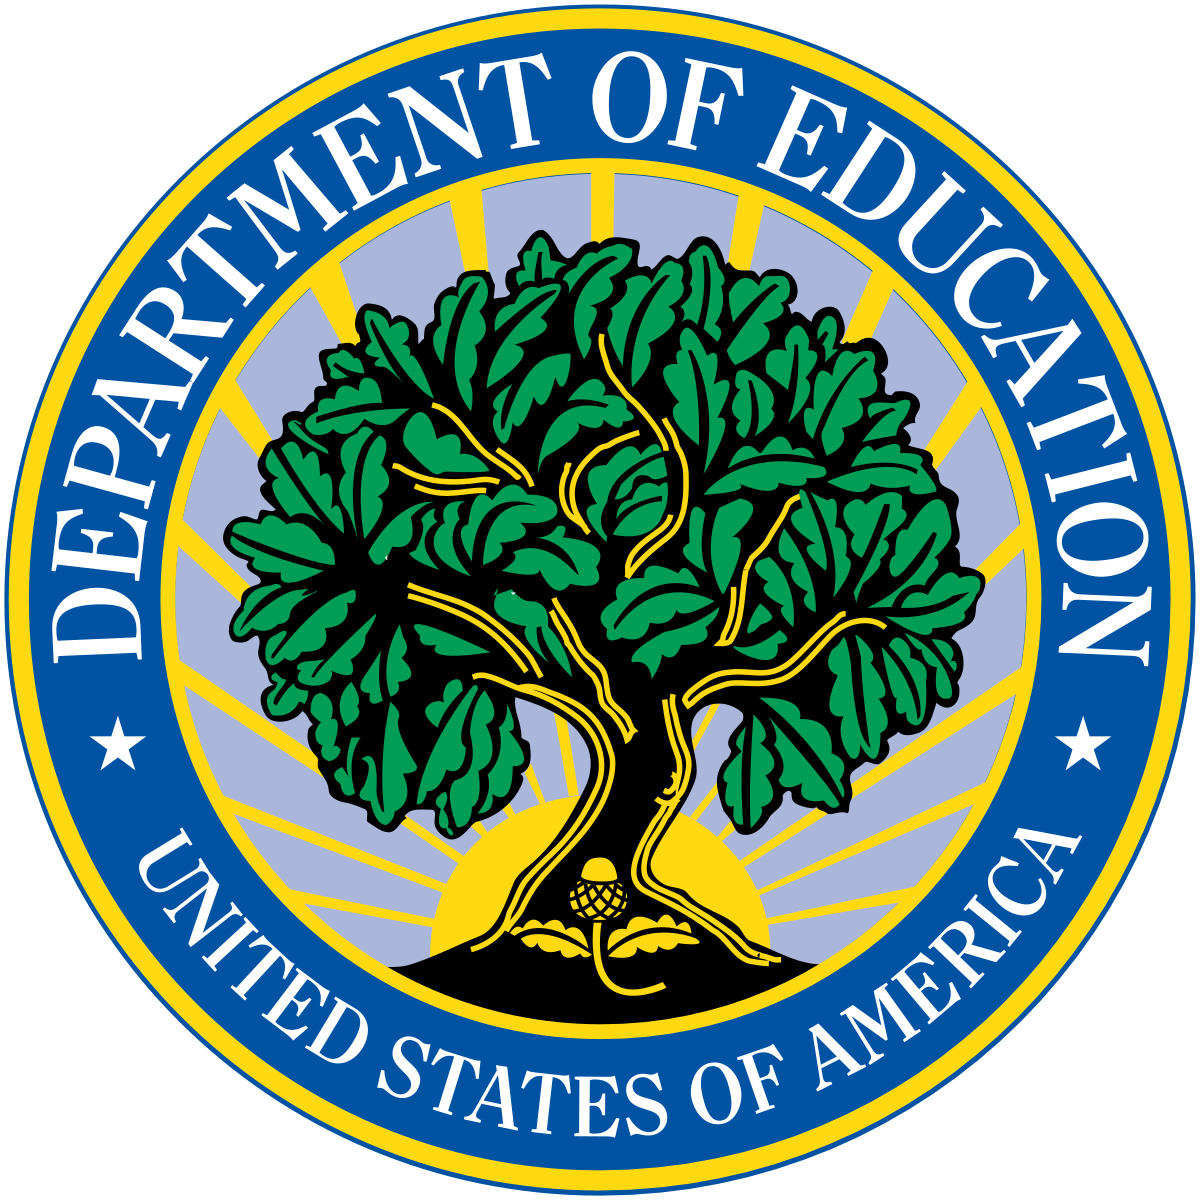 3.1-department-of-education-logo.png